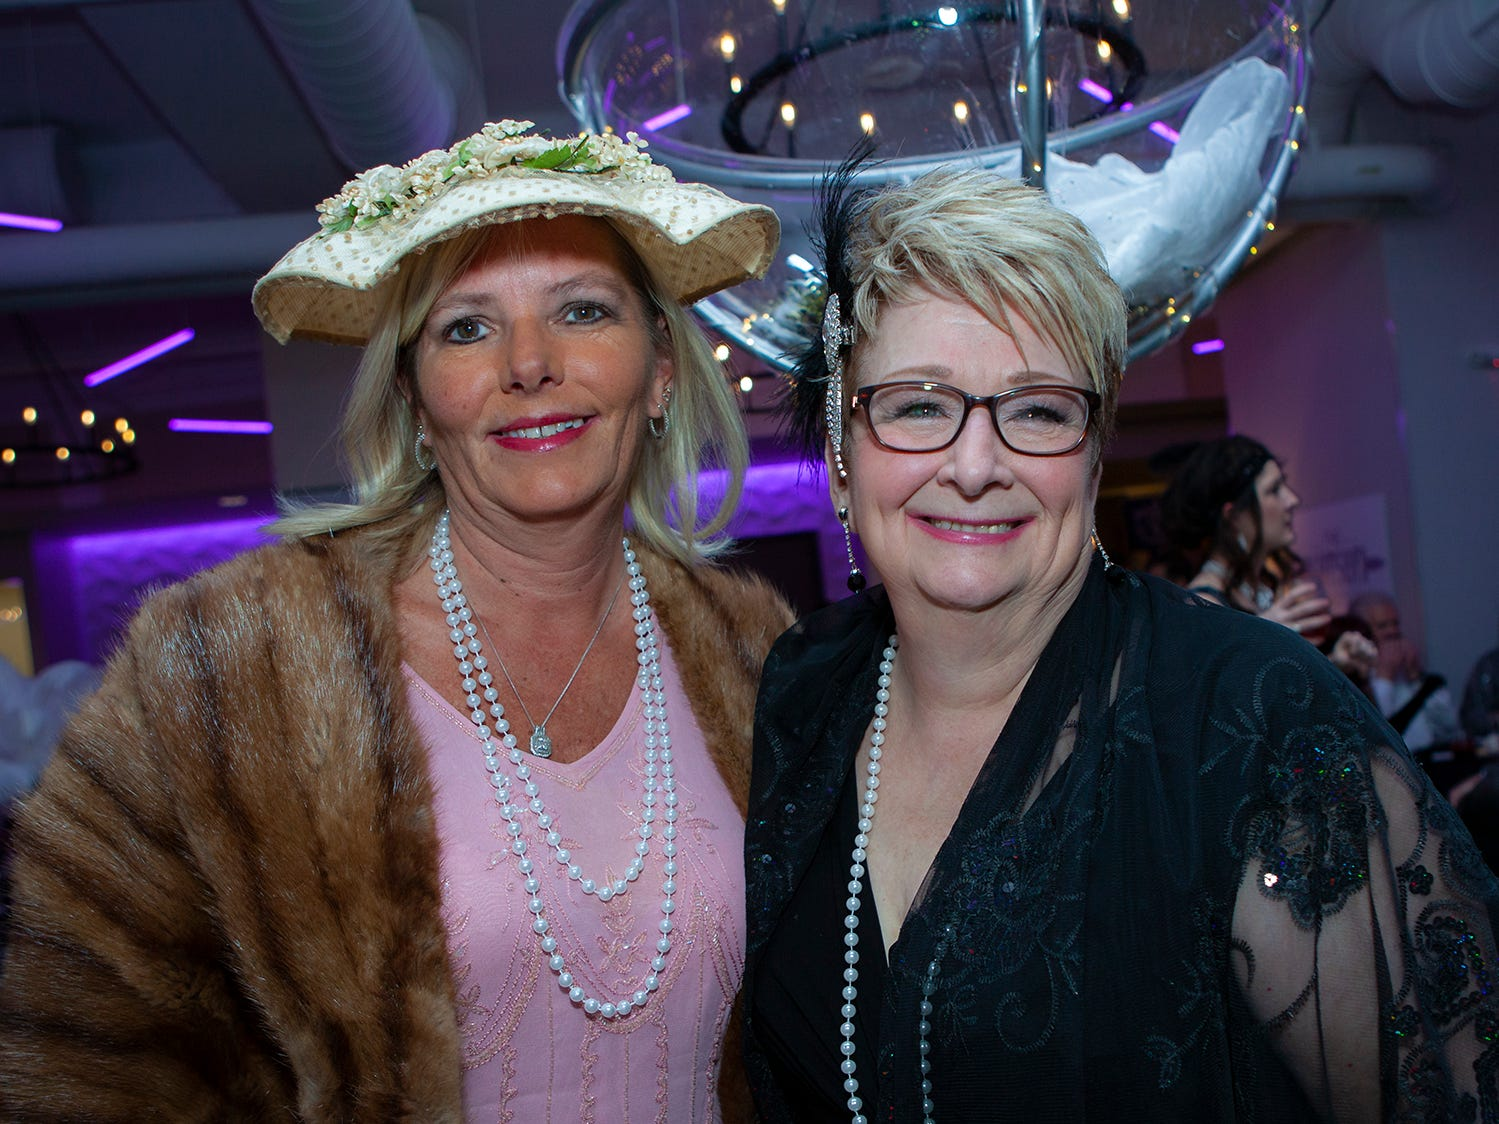 The sixth annual Gatsby Party benefitting the Alzheimer's Association was held Saturday, March 16 at The View at Fountains.